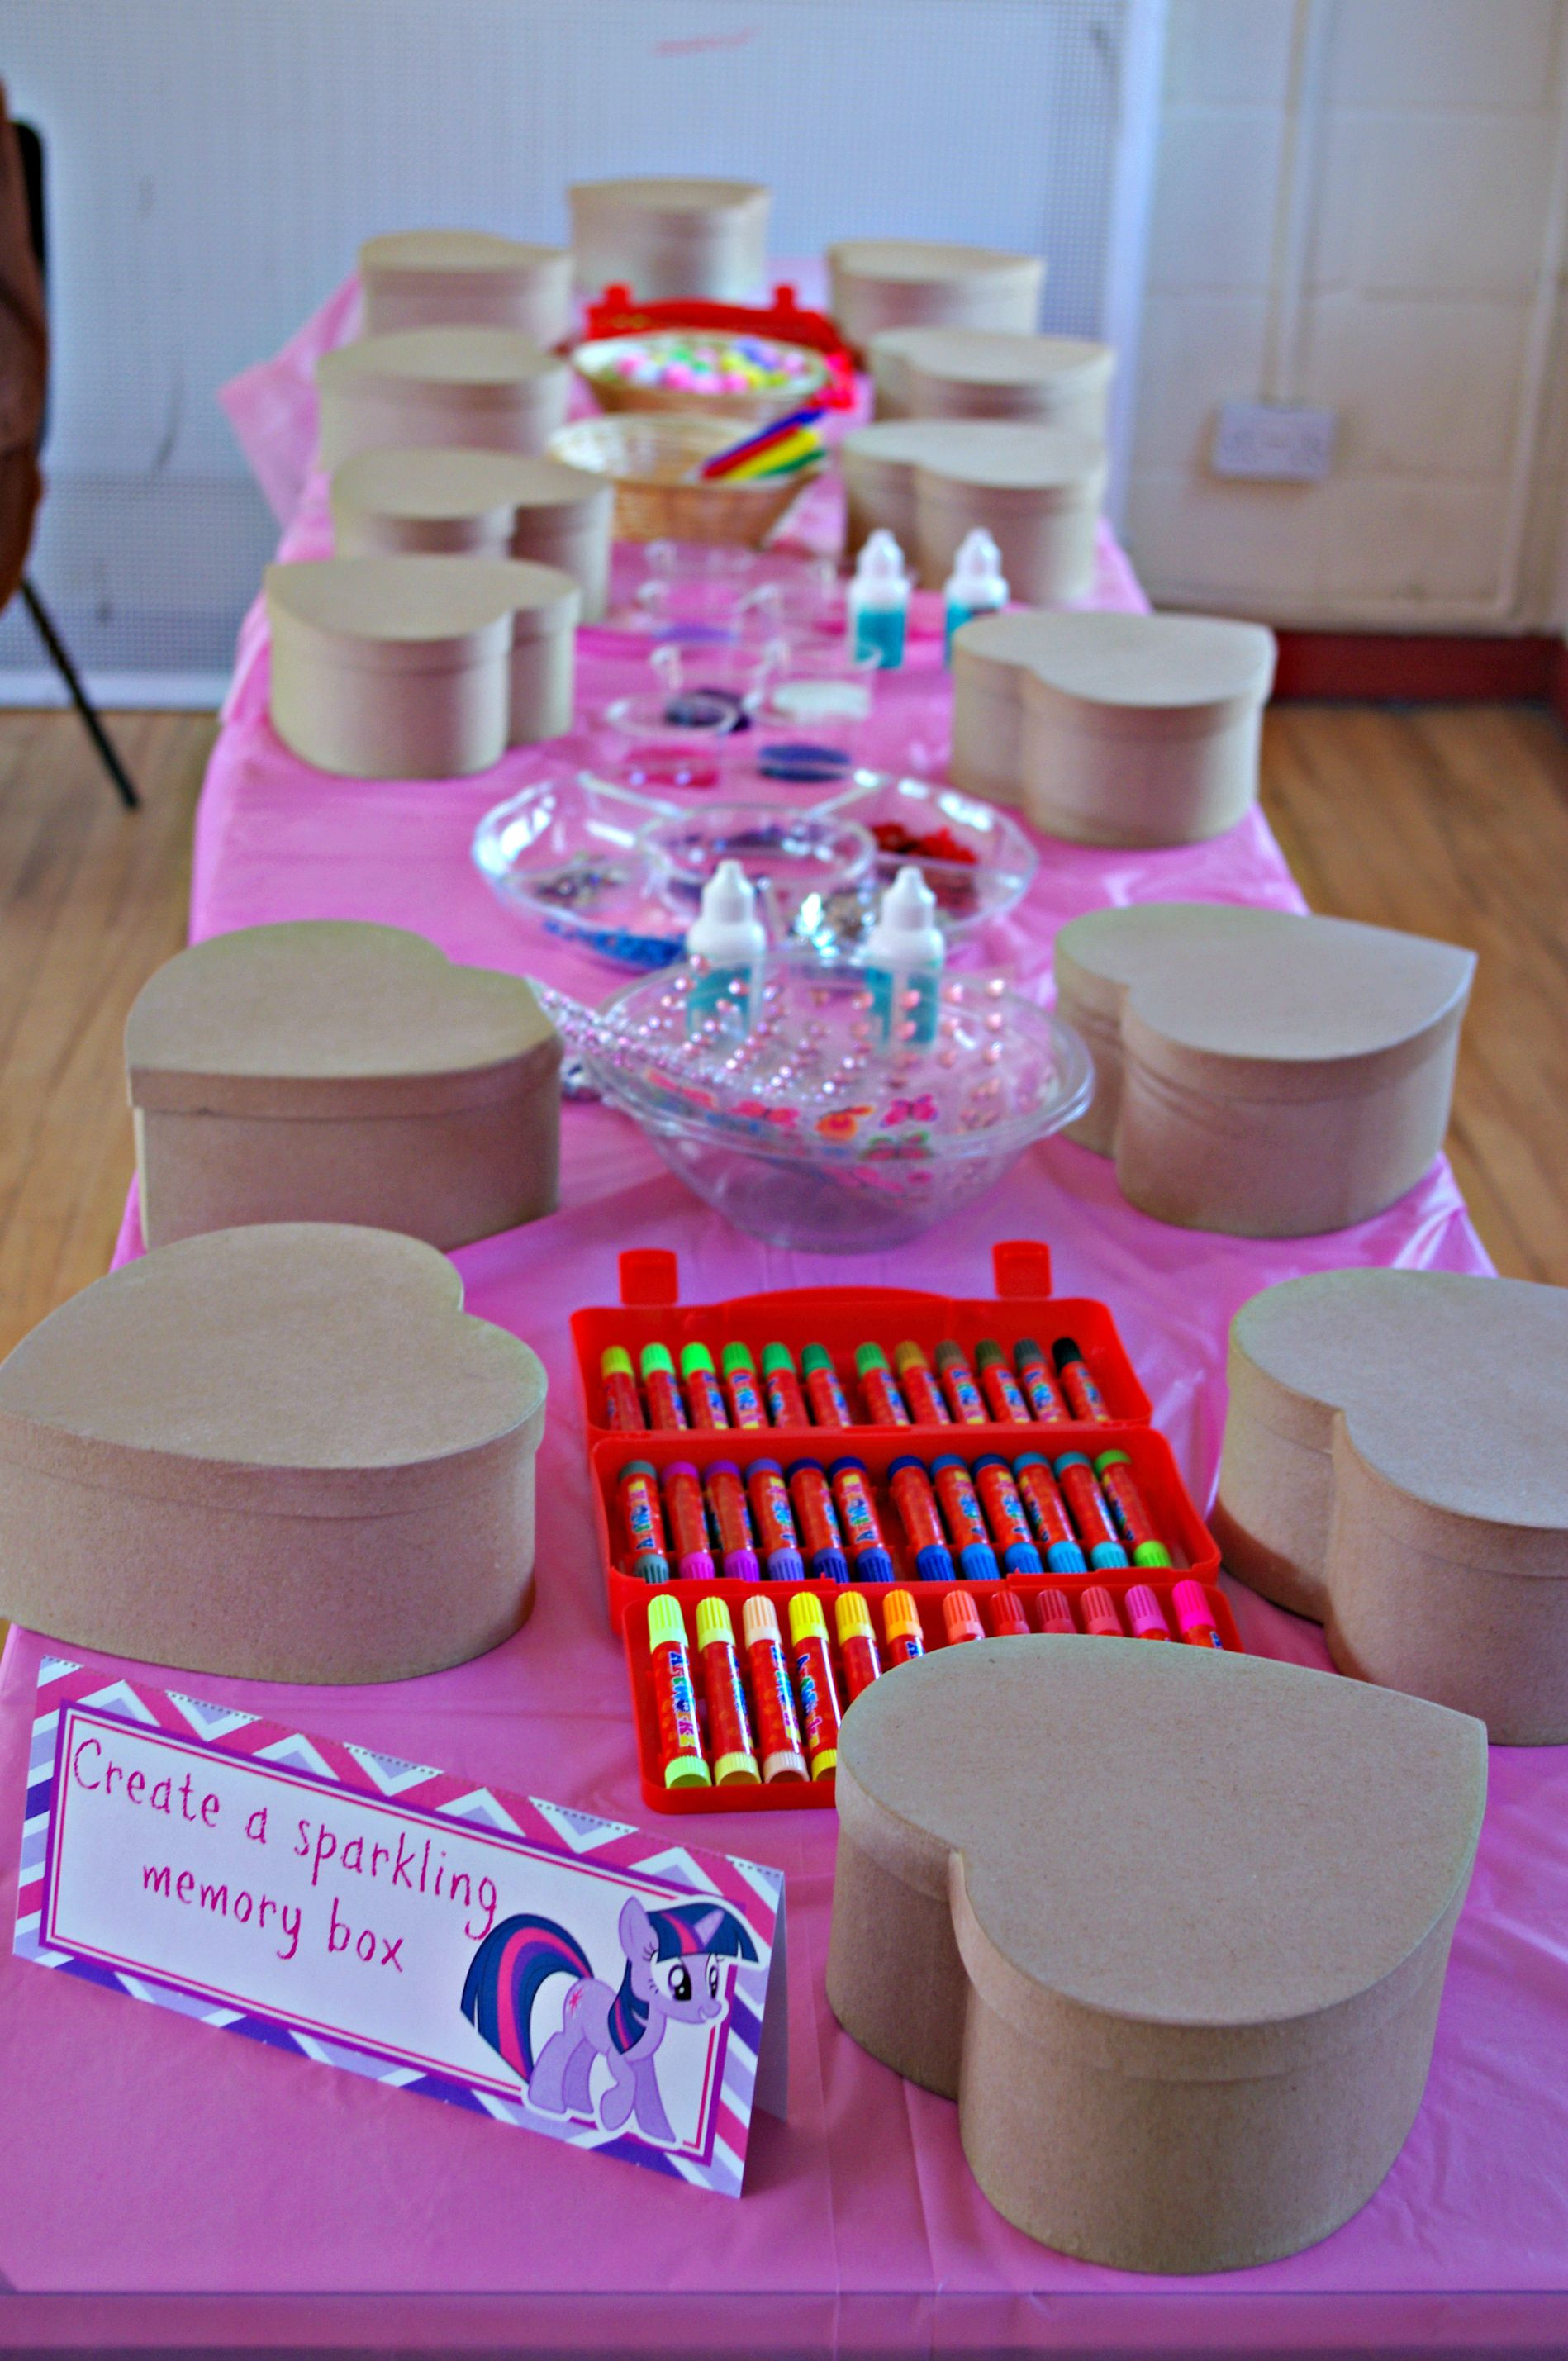 Delightful Kids Party Craft Ideas Part - 9: My Little Pony Craft Party More